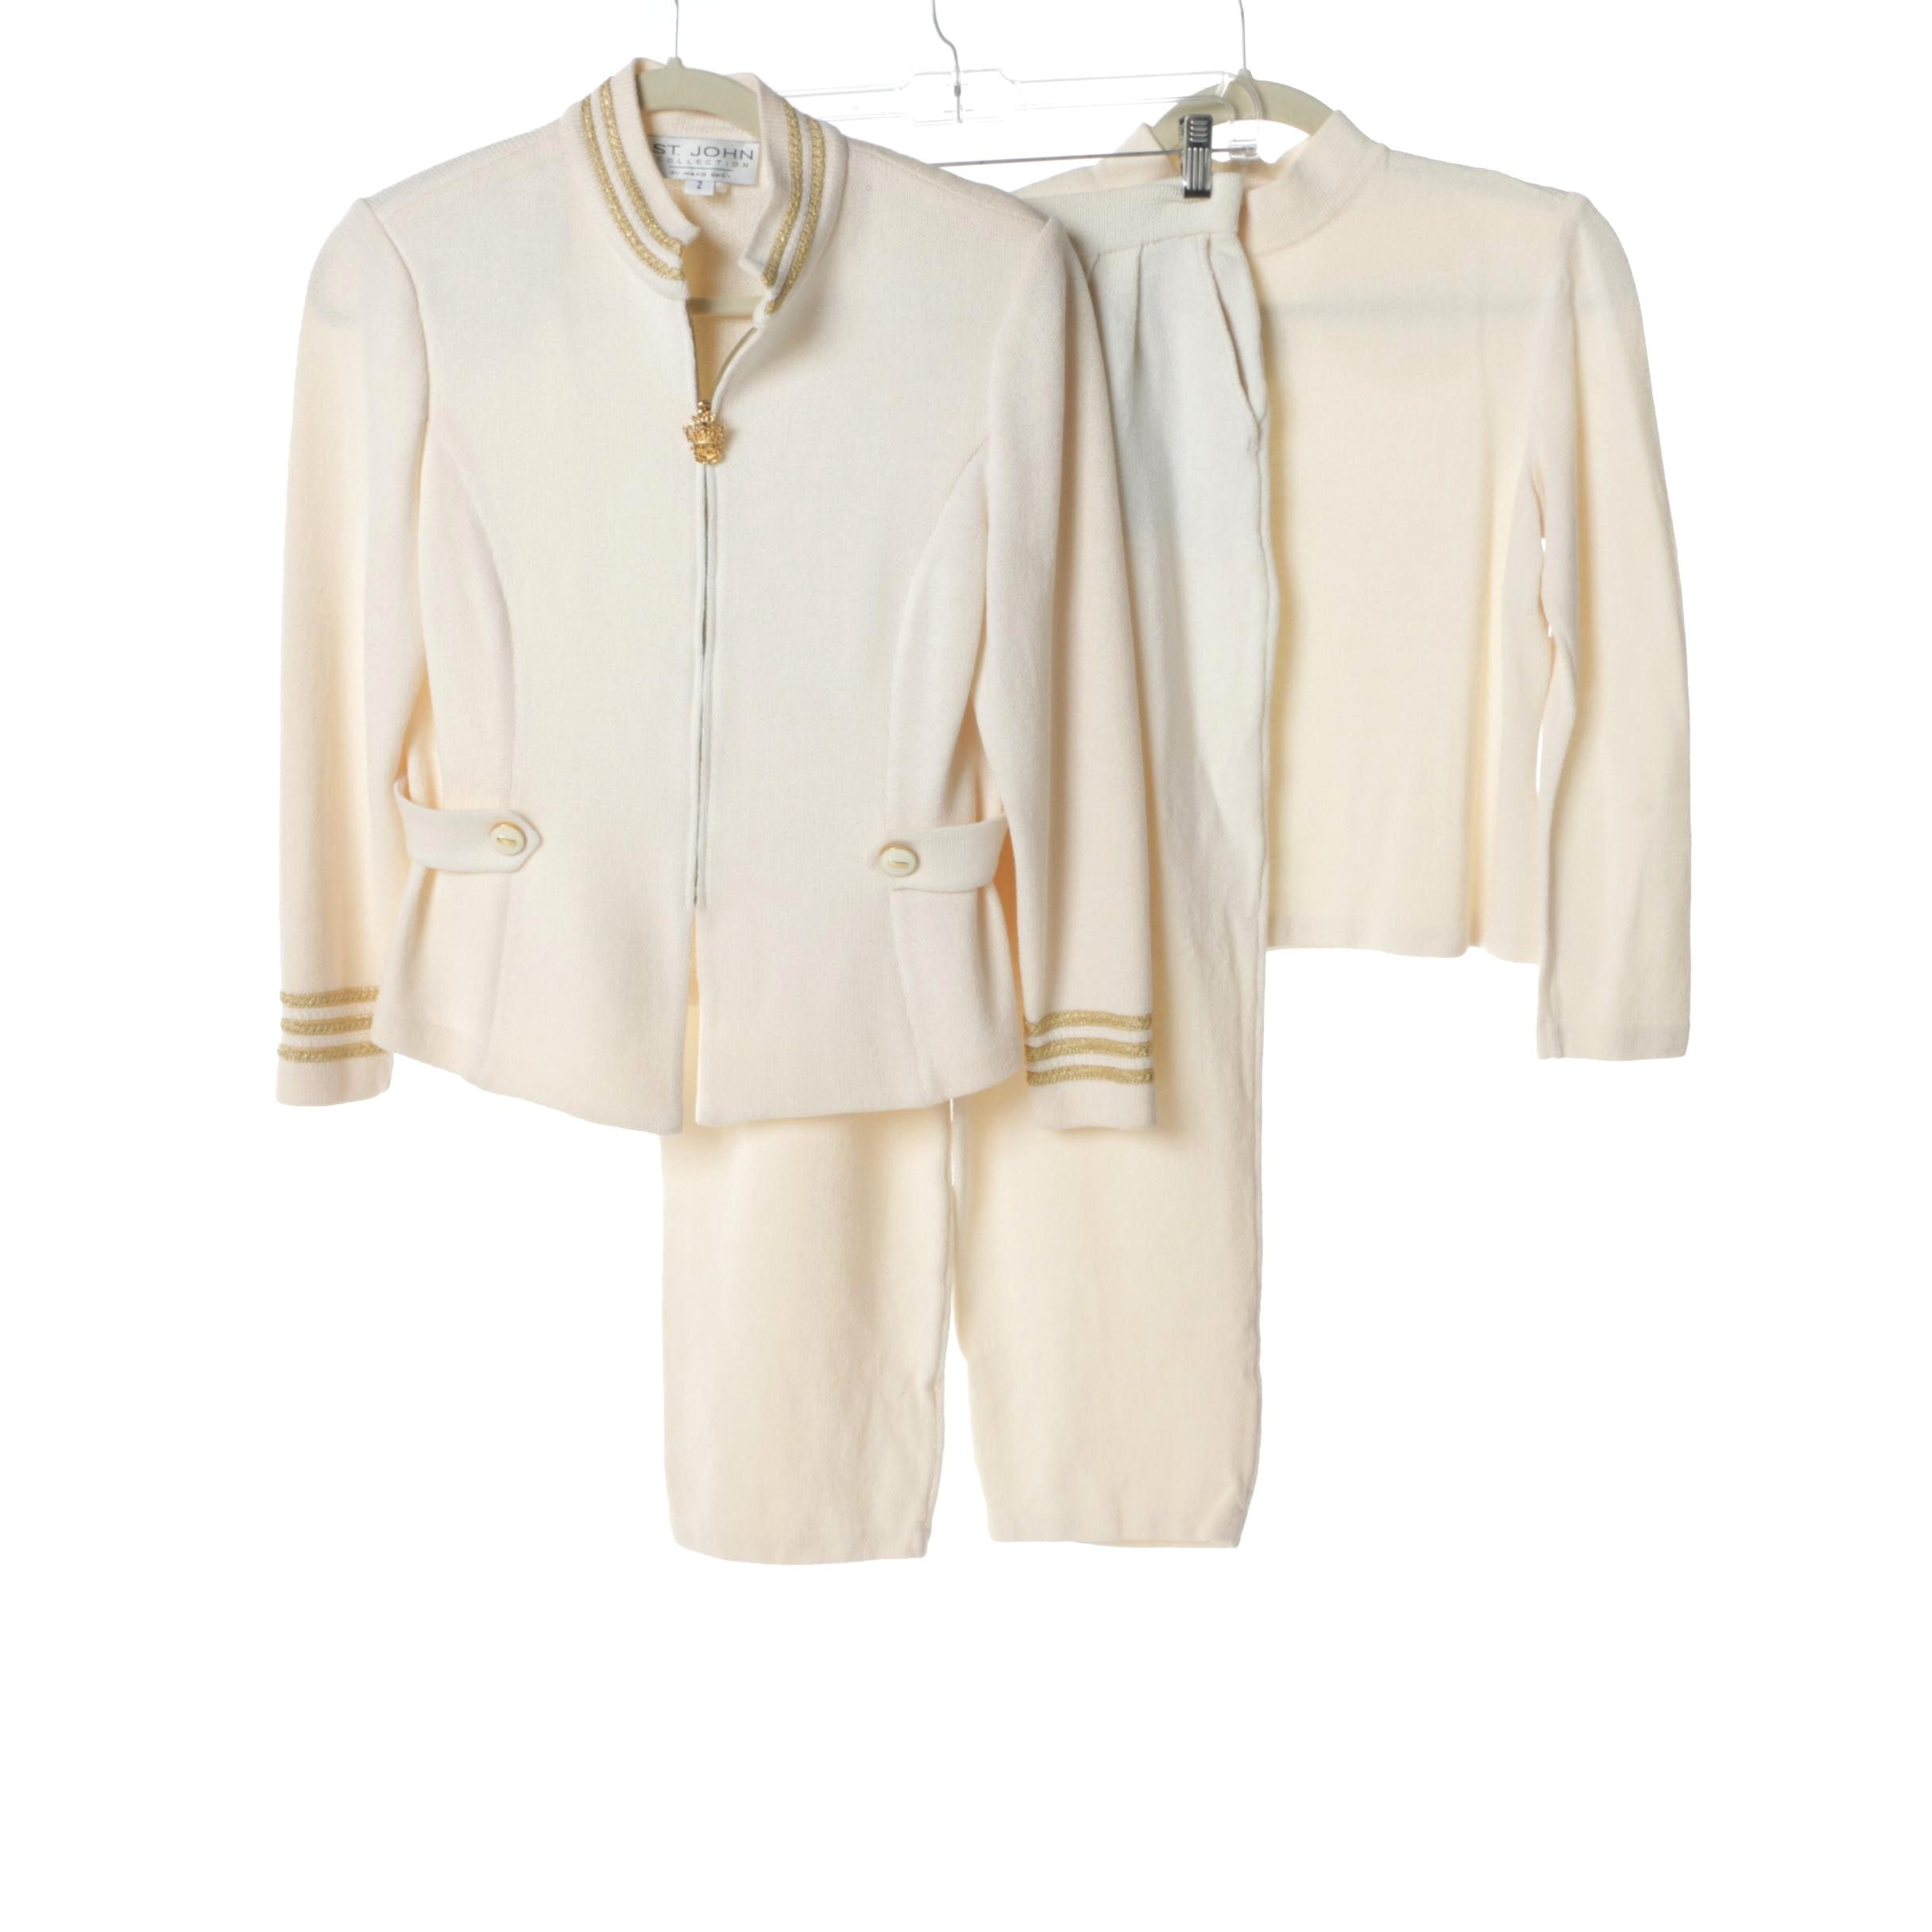 Women's St. John Collection Cream Knit Pantsuit and Turtleneck